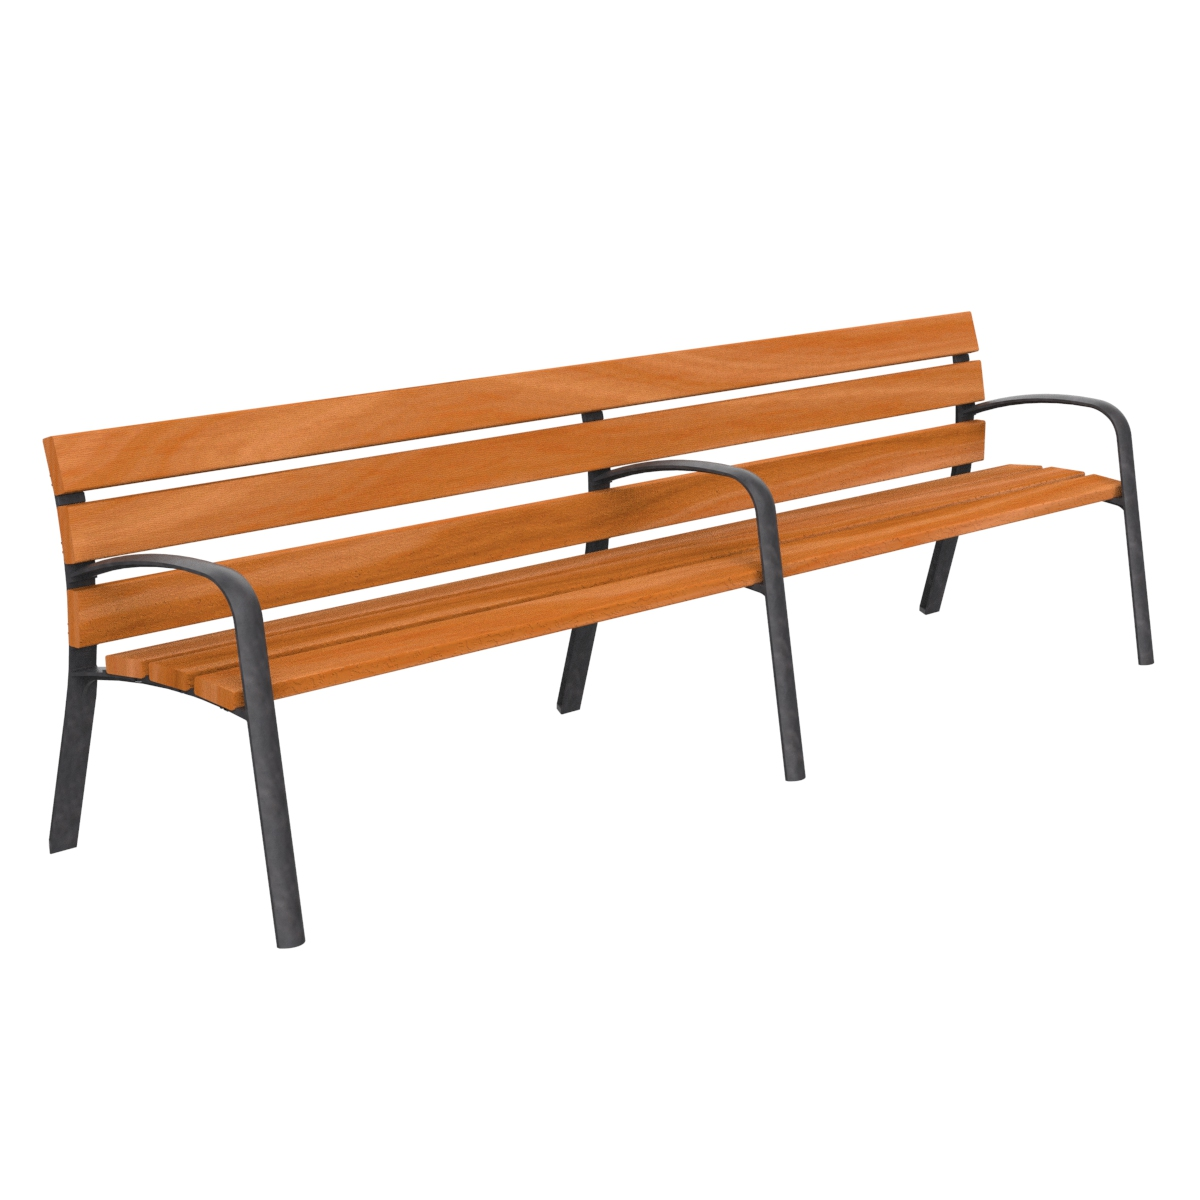 Modo Wood Bench furniture urban element parks and gardens C-106